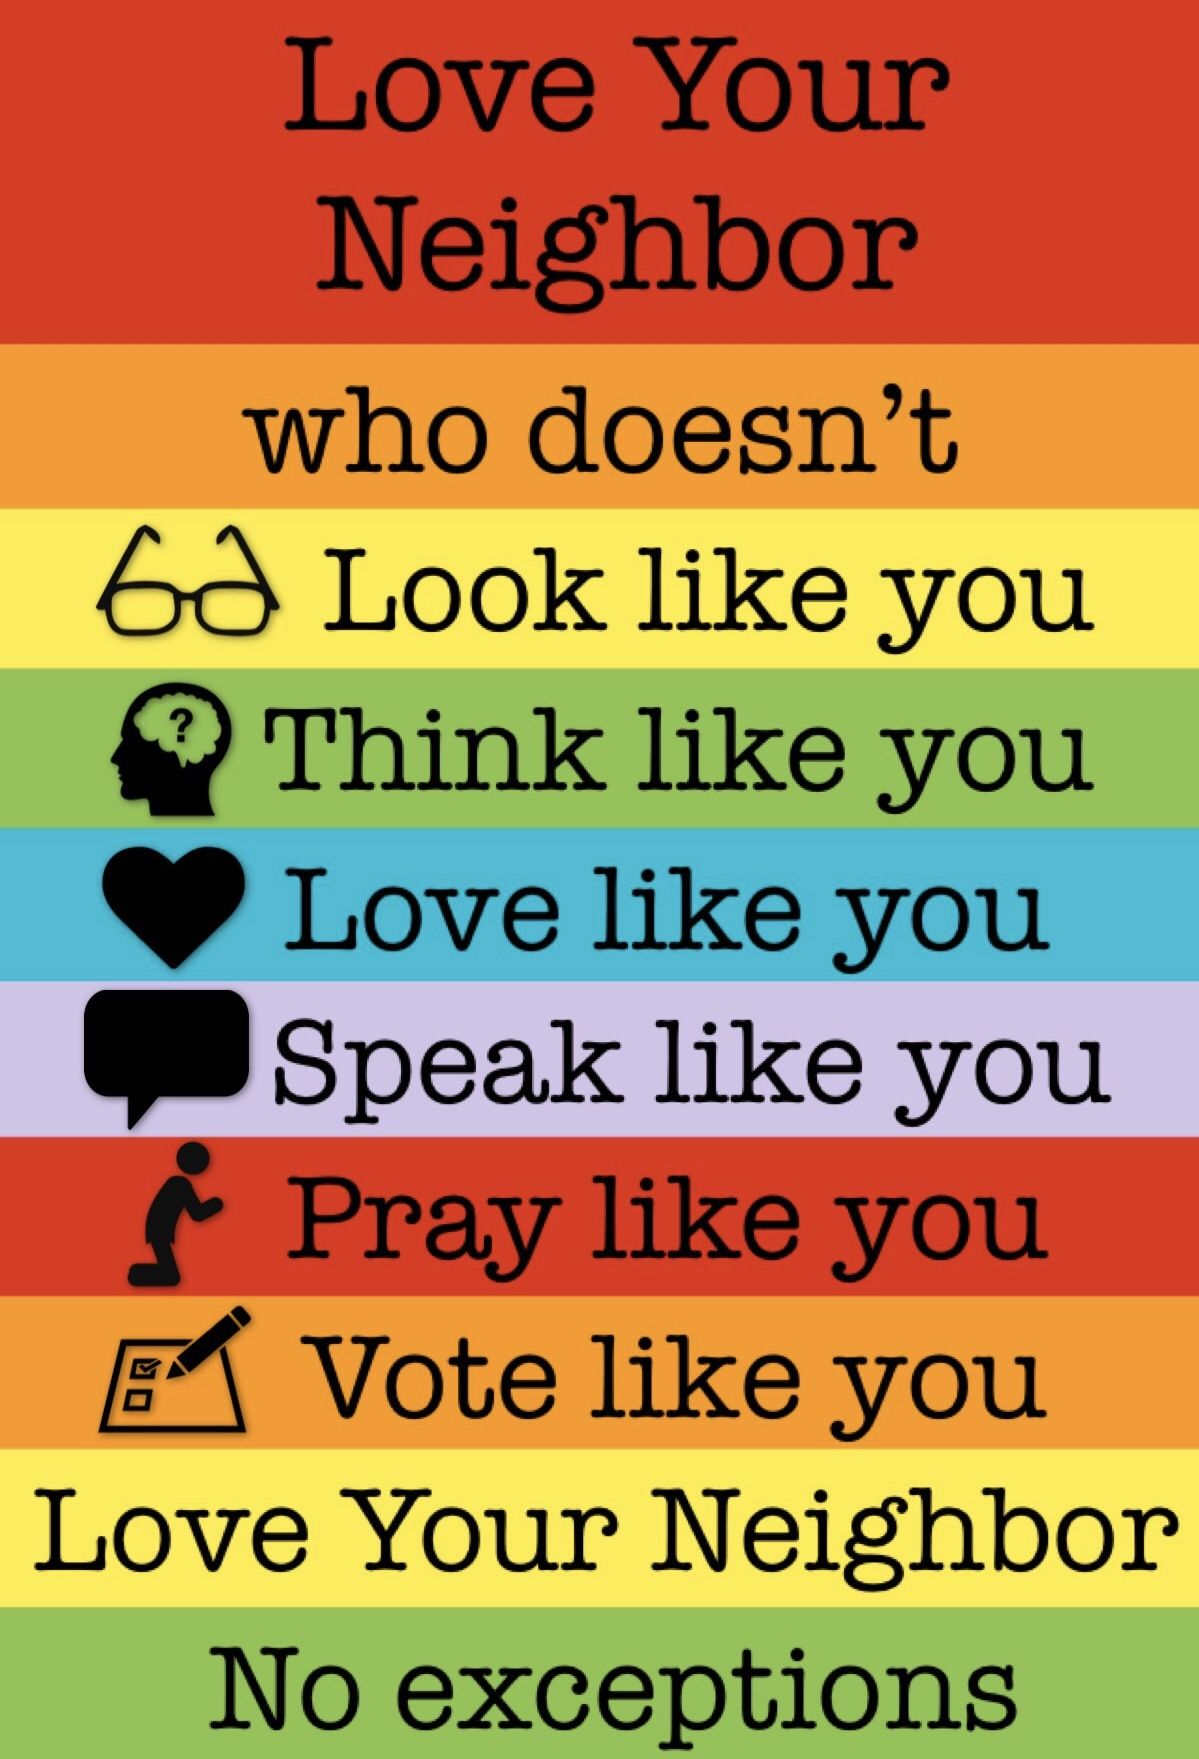 Pin By Lucinda Greenway On Politics Current Events Love Your Neighbour Neighbor Quotes Love Yourself Quotes